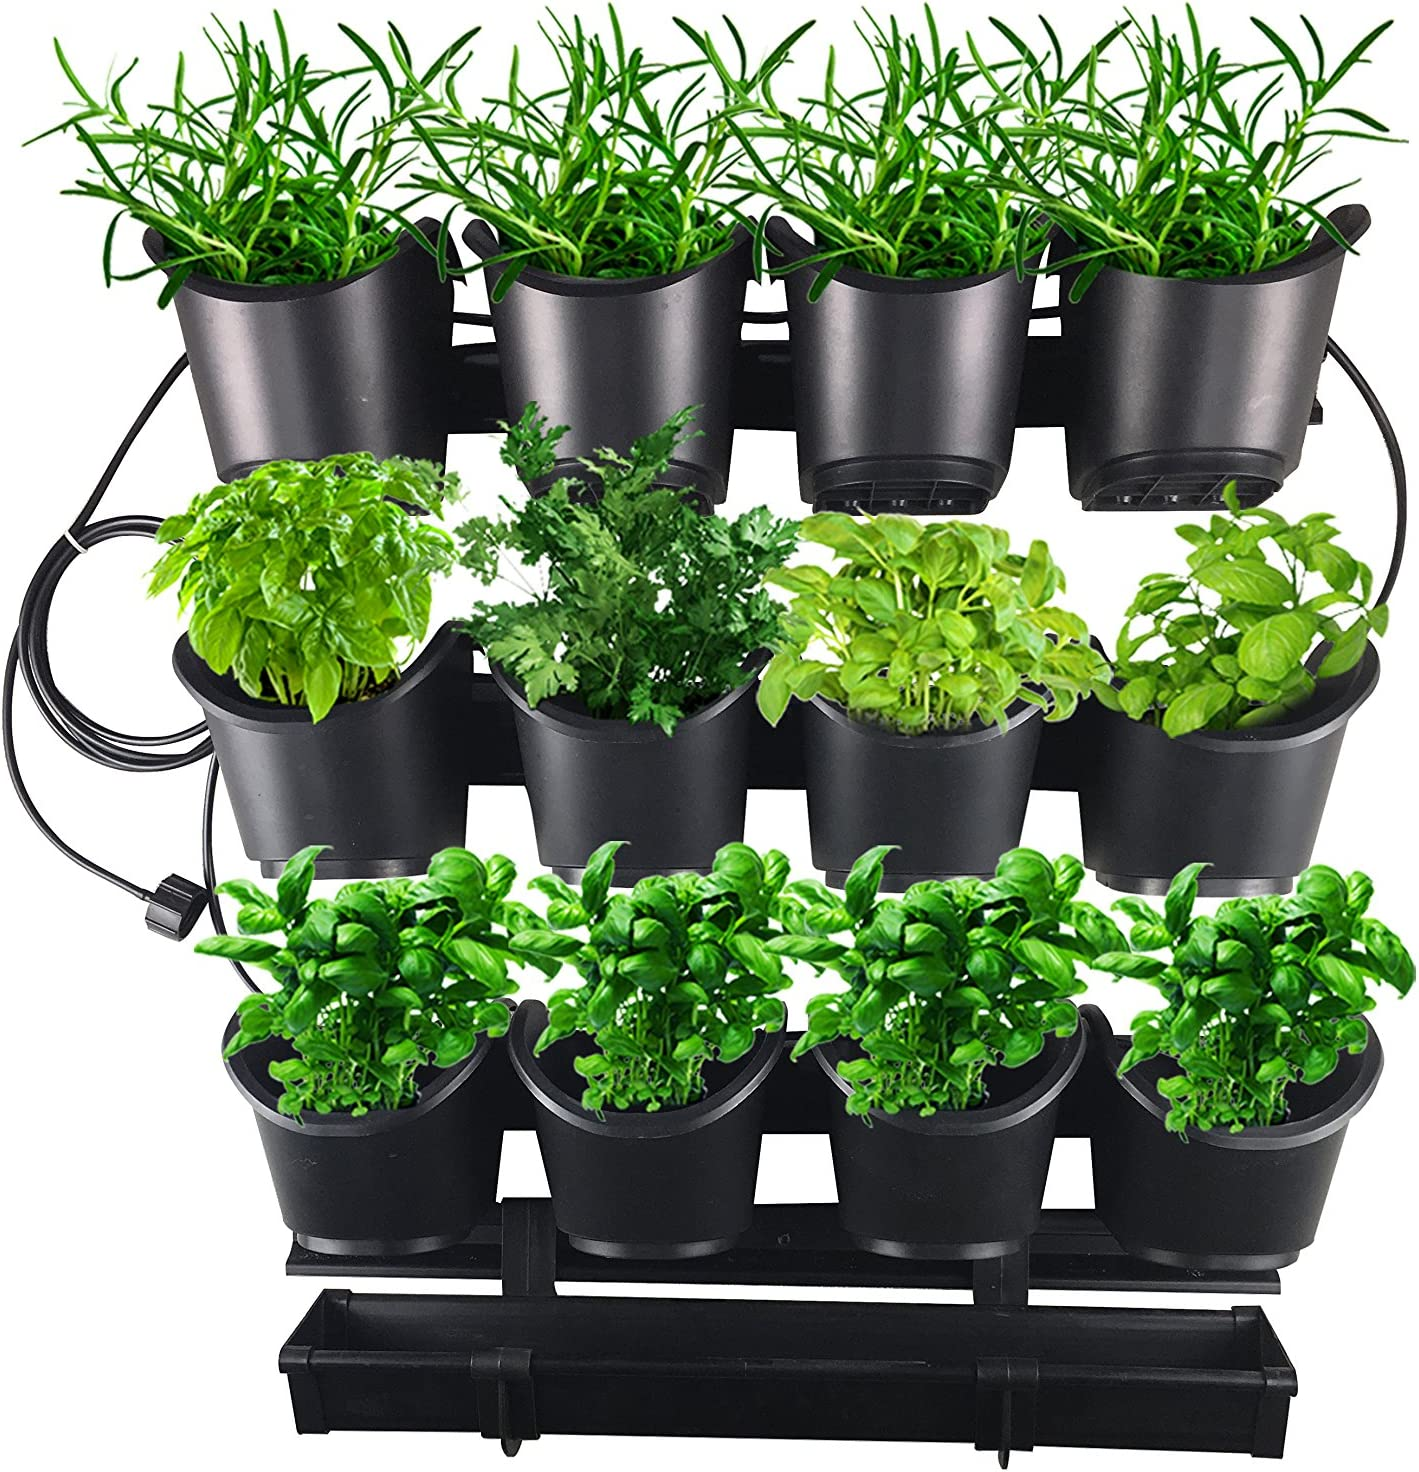 Watex Urban Farming Grow-Your-Own Herb & Flower Starter Kit with Micro Irrigation System